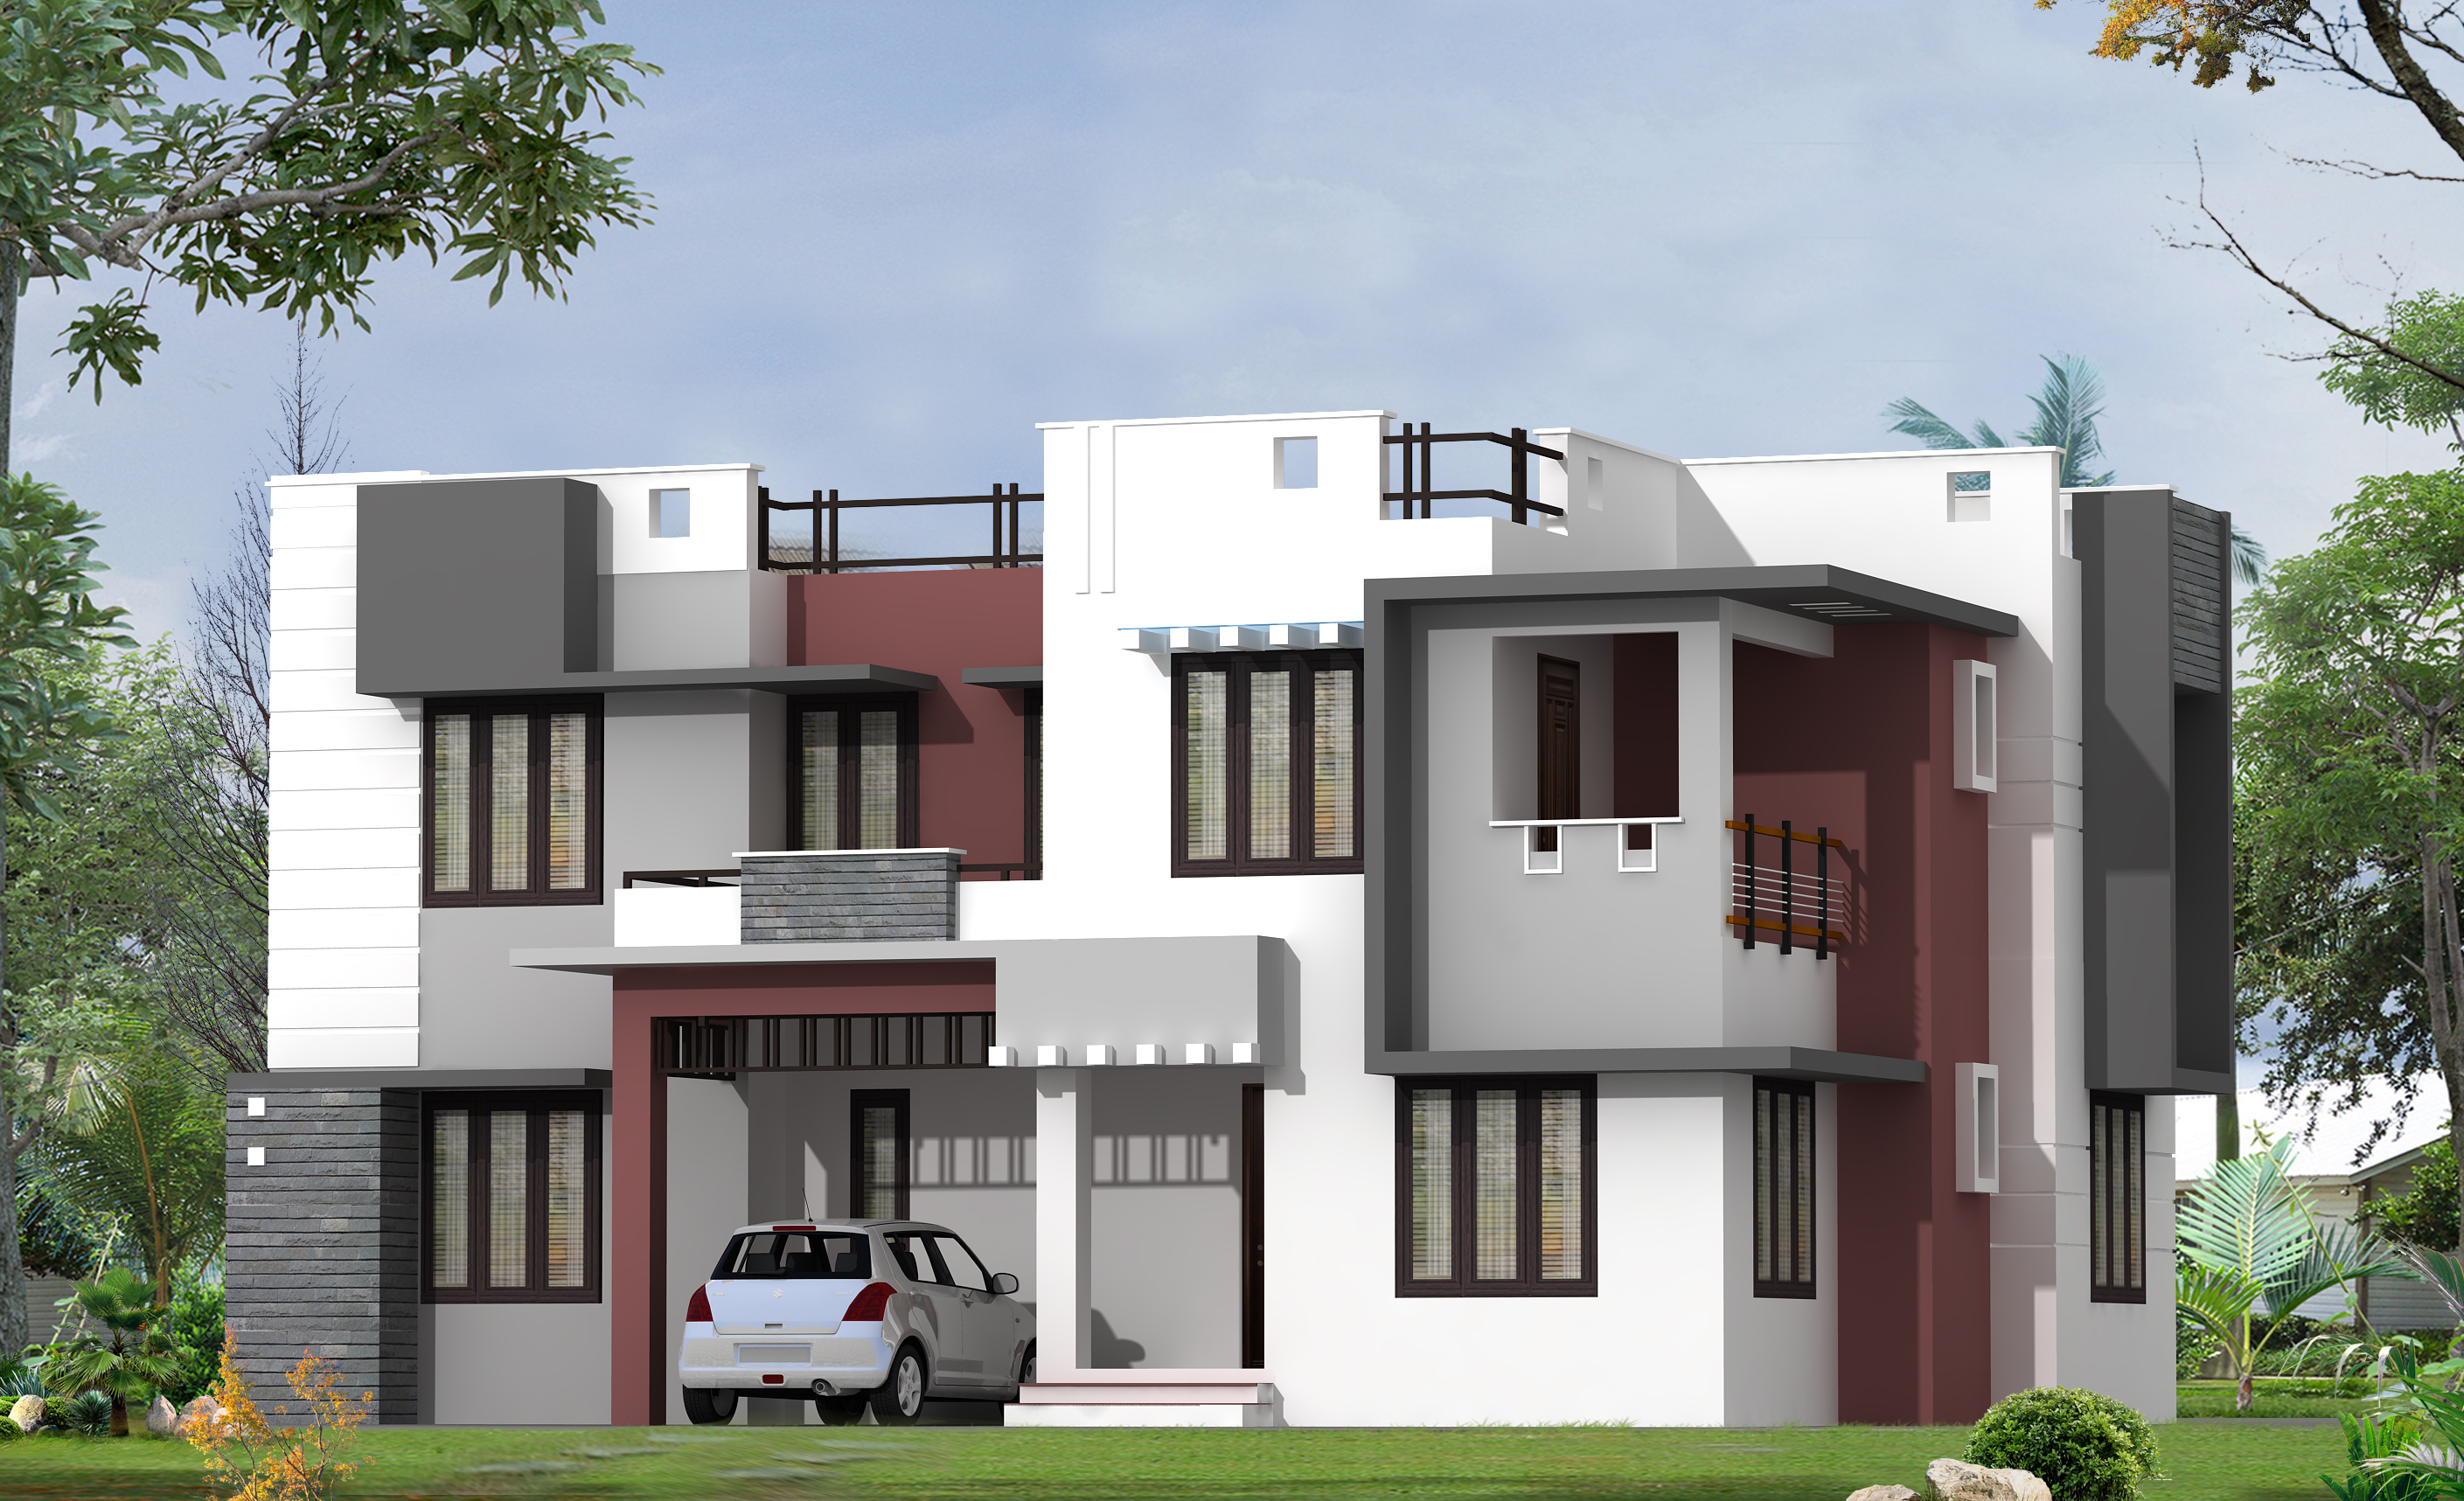 Simple house elevations photos in bangalore joy studio design gallery best design - Easy home design tips ...